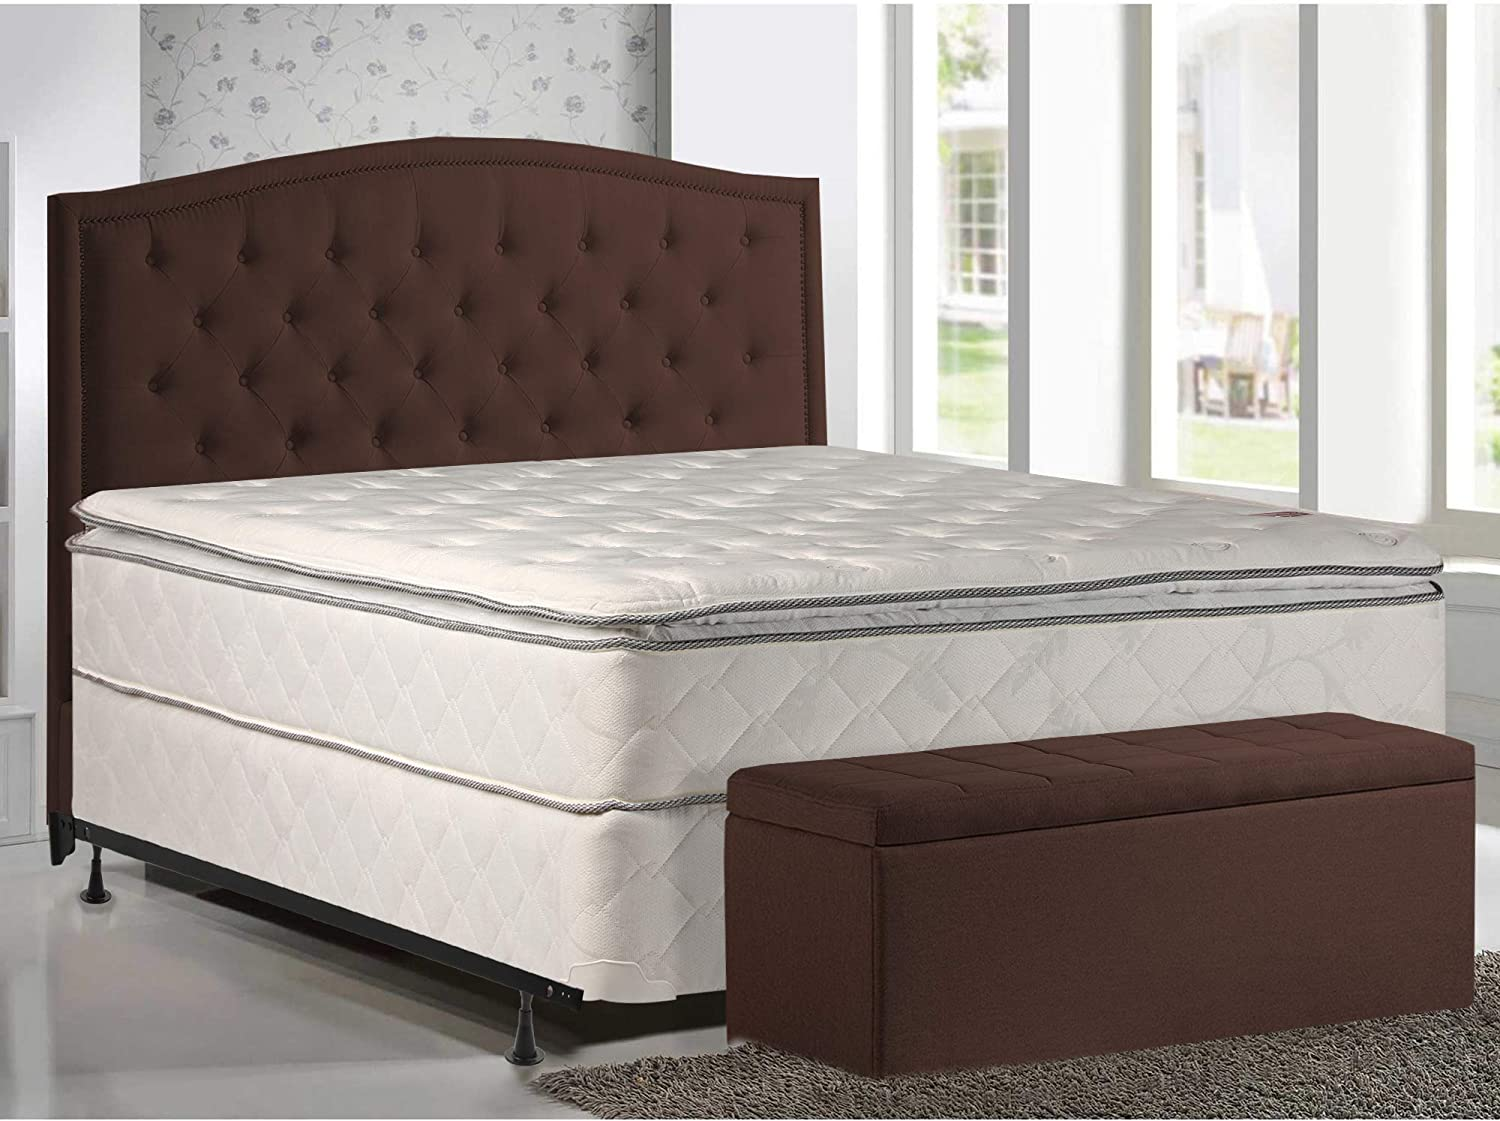 10-Inch Pillowtop Innerspring Ranking TOP3 Mattress and Fo Spring Wood Sale item 8